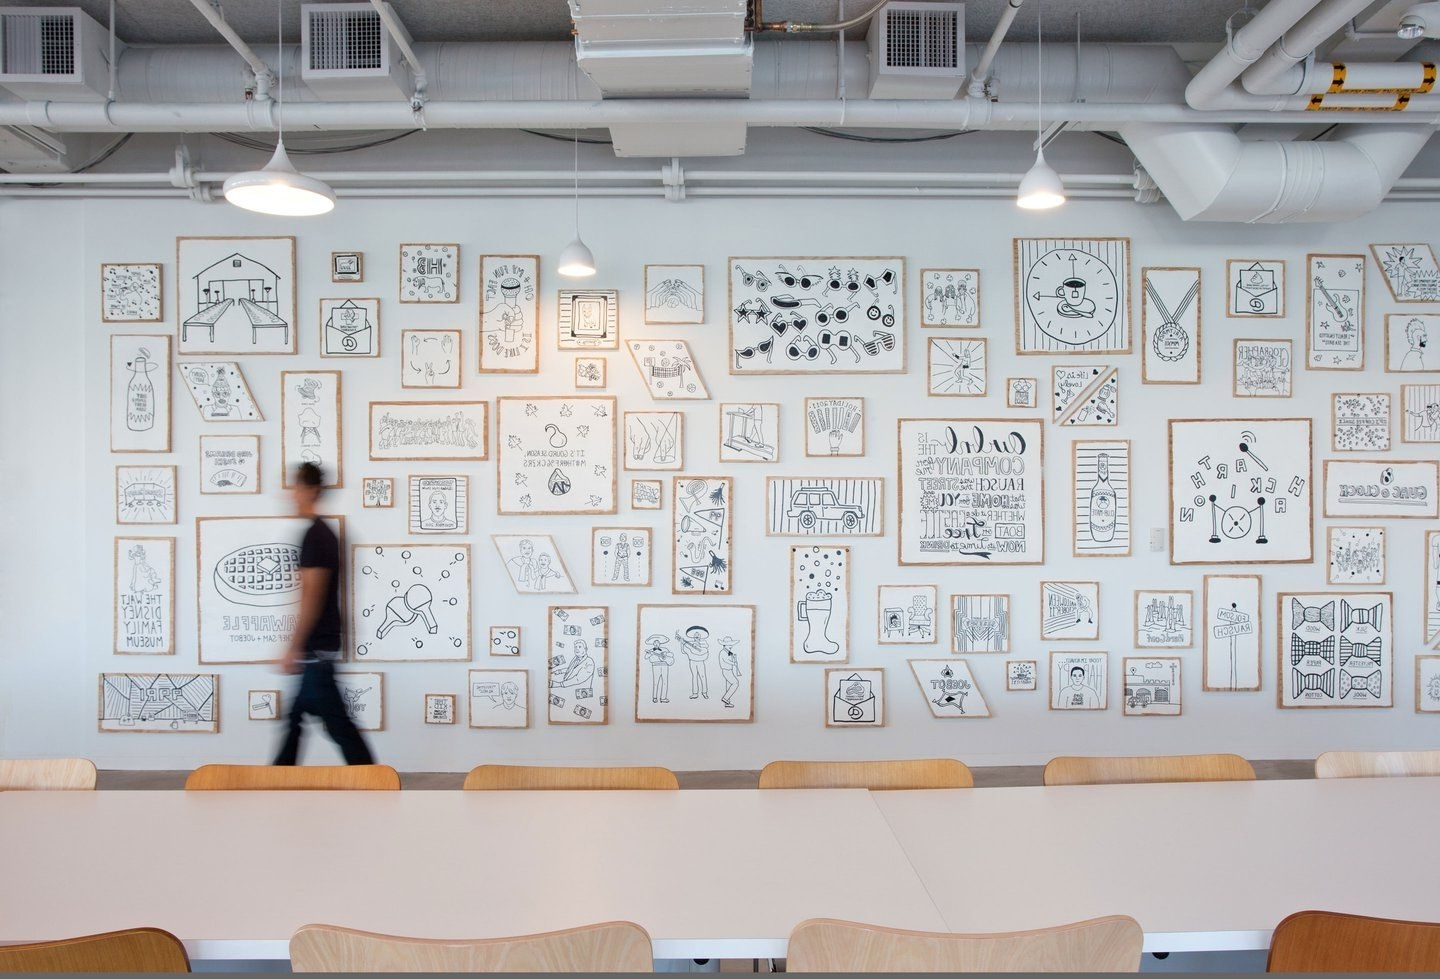 Wall Ideas Pertaining To Wall Art For Office Space (View 3 of 15)